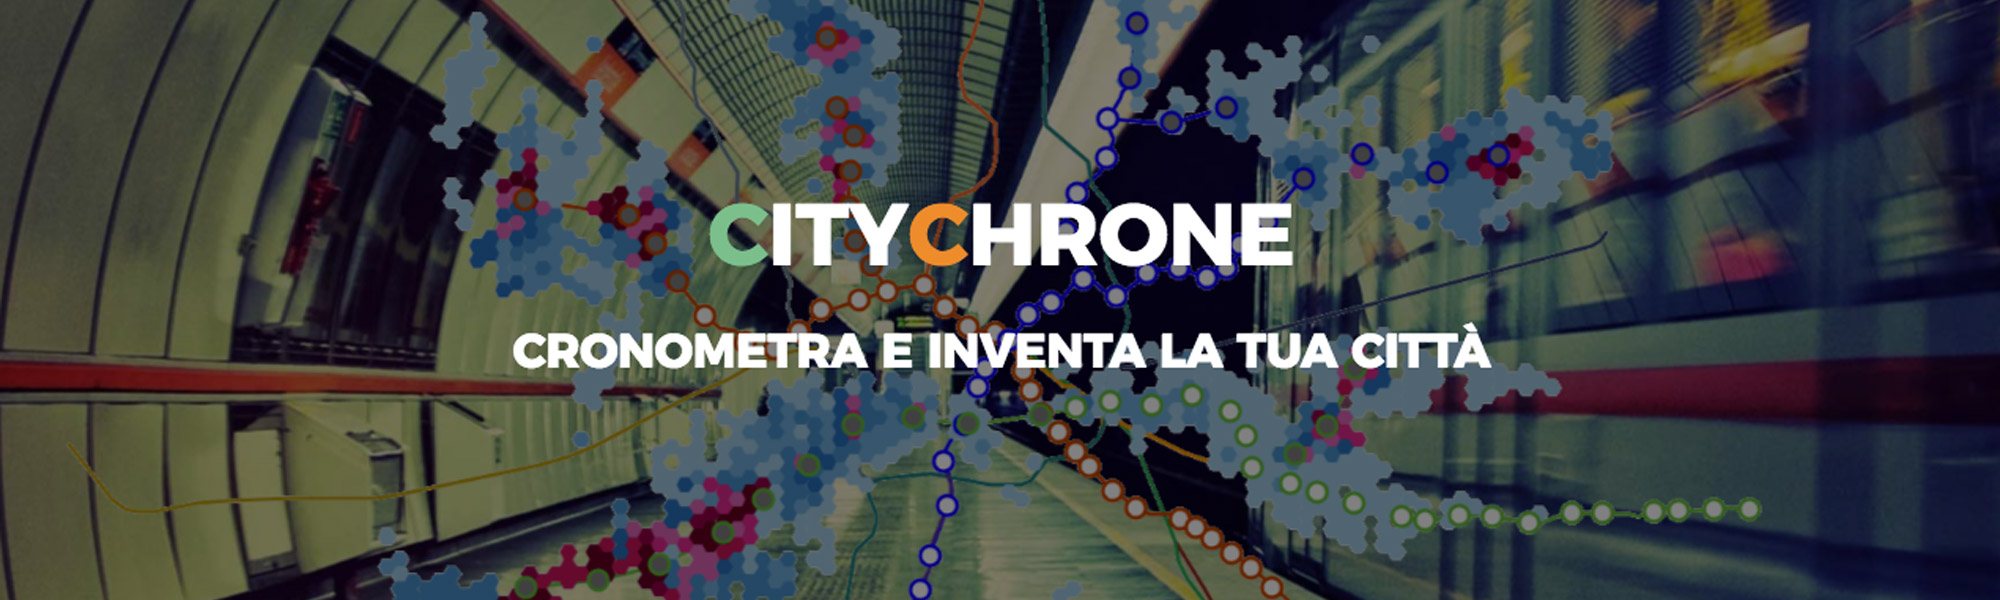 Citychrone - Time your City